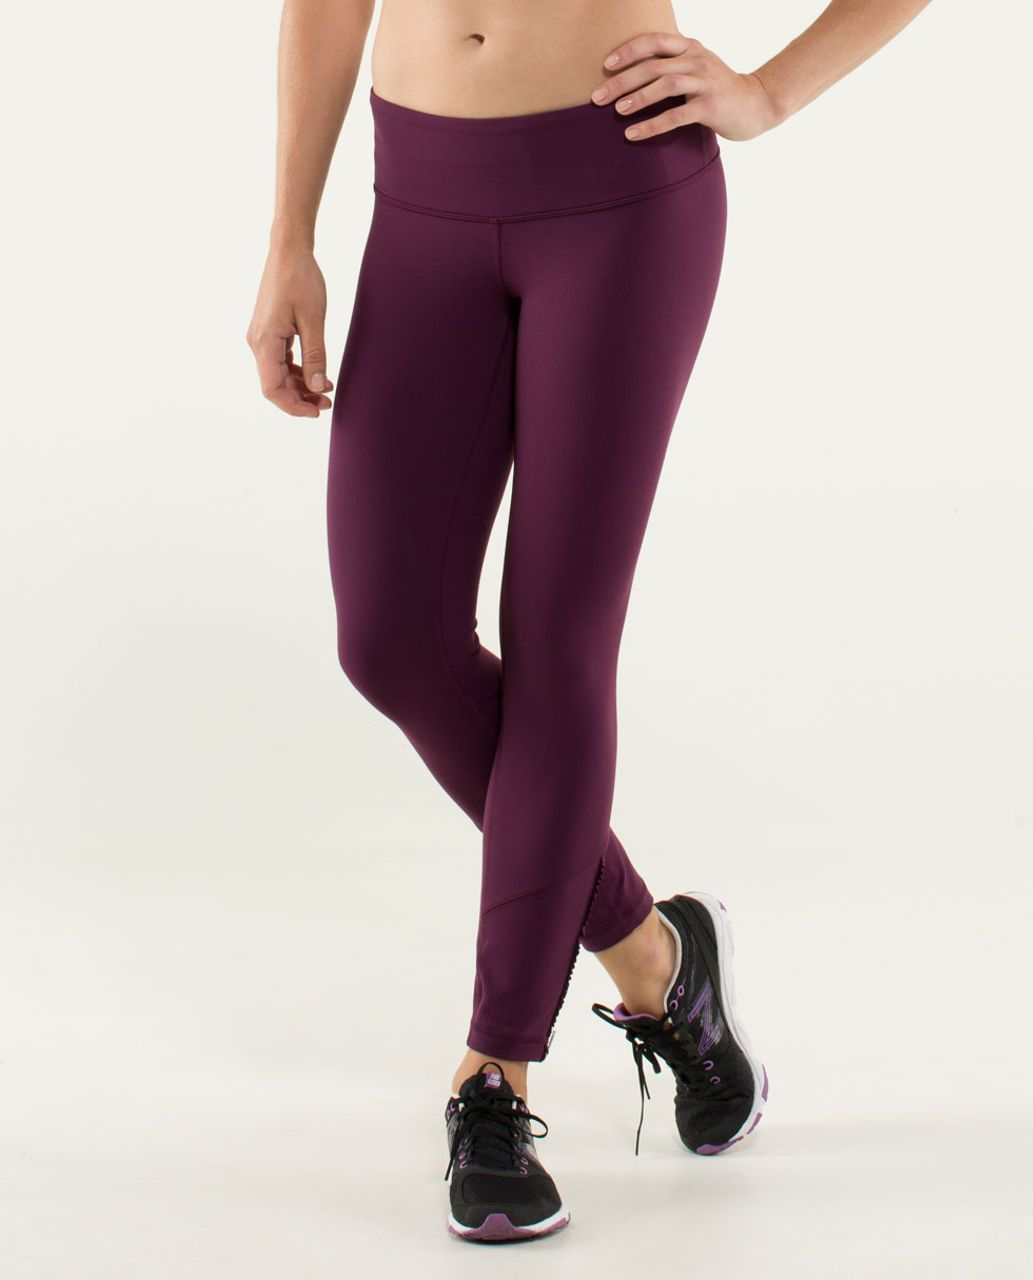 Lululemon Wunder Under Pant *Ruffled Up - Plum / Hyper Stripe Raspberry Glo Light